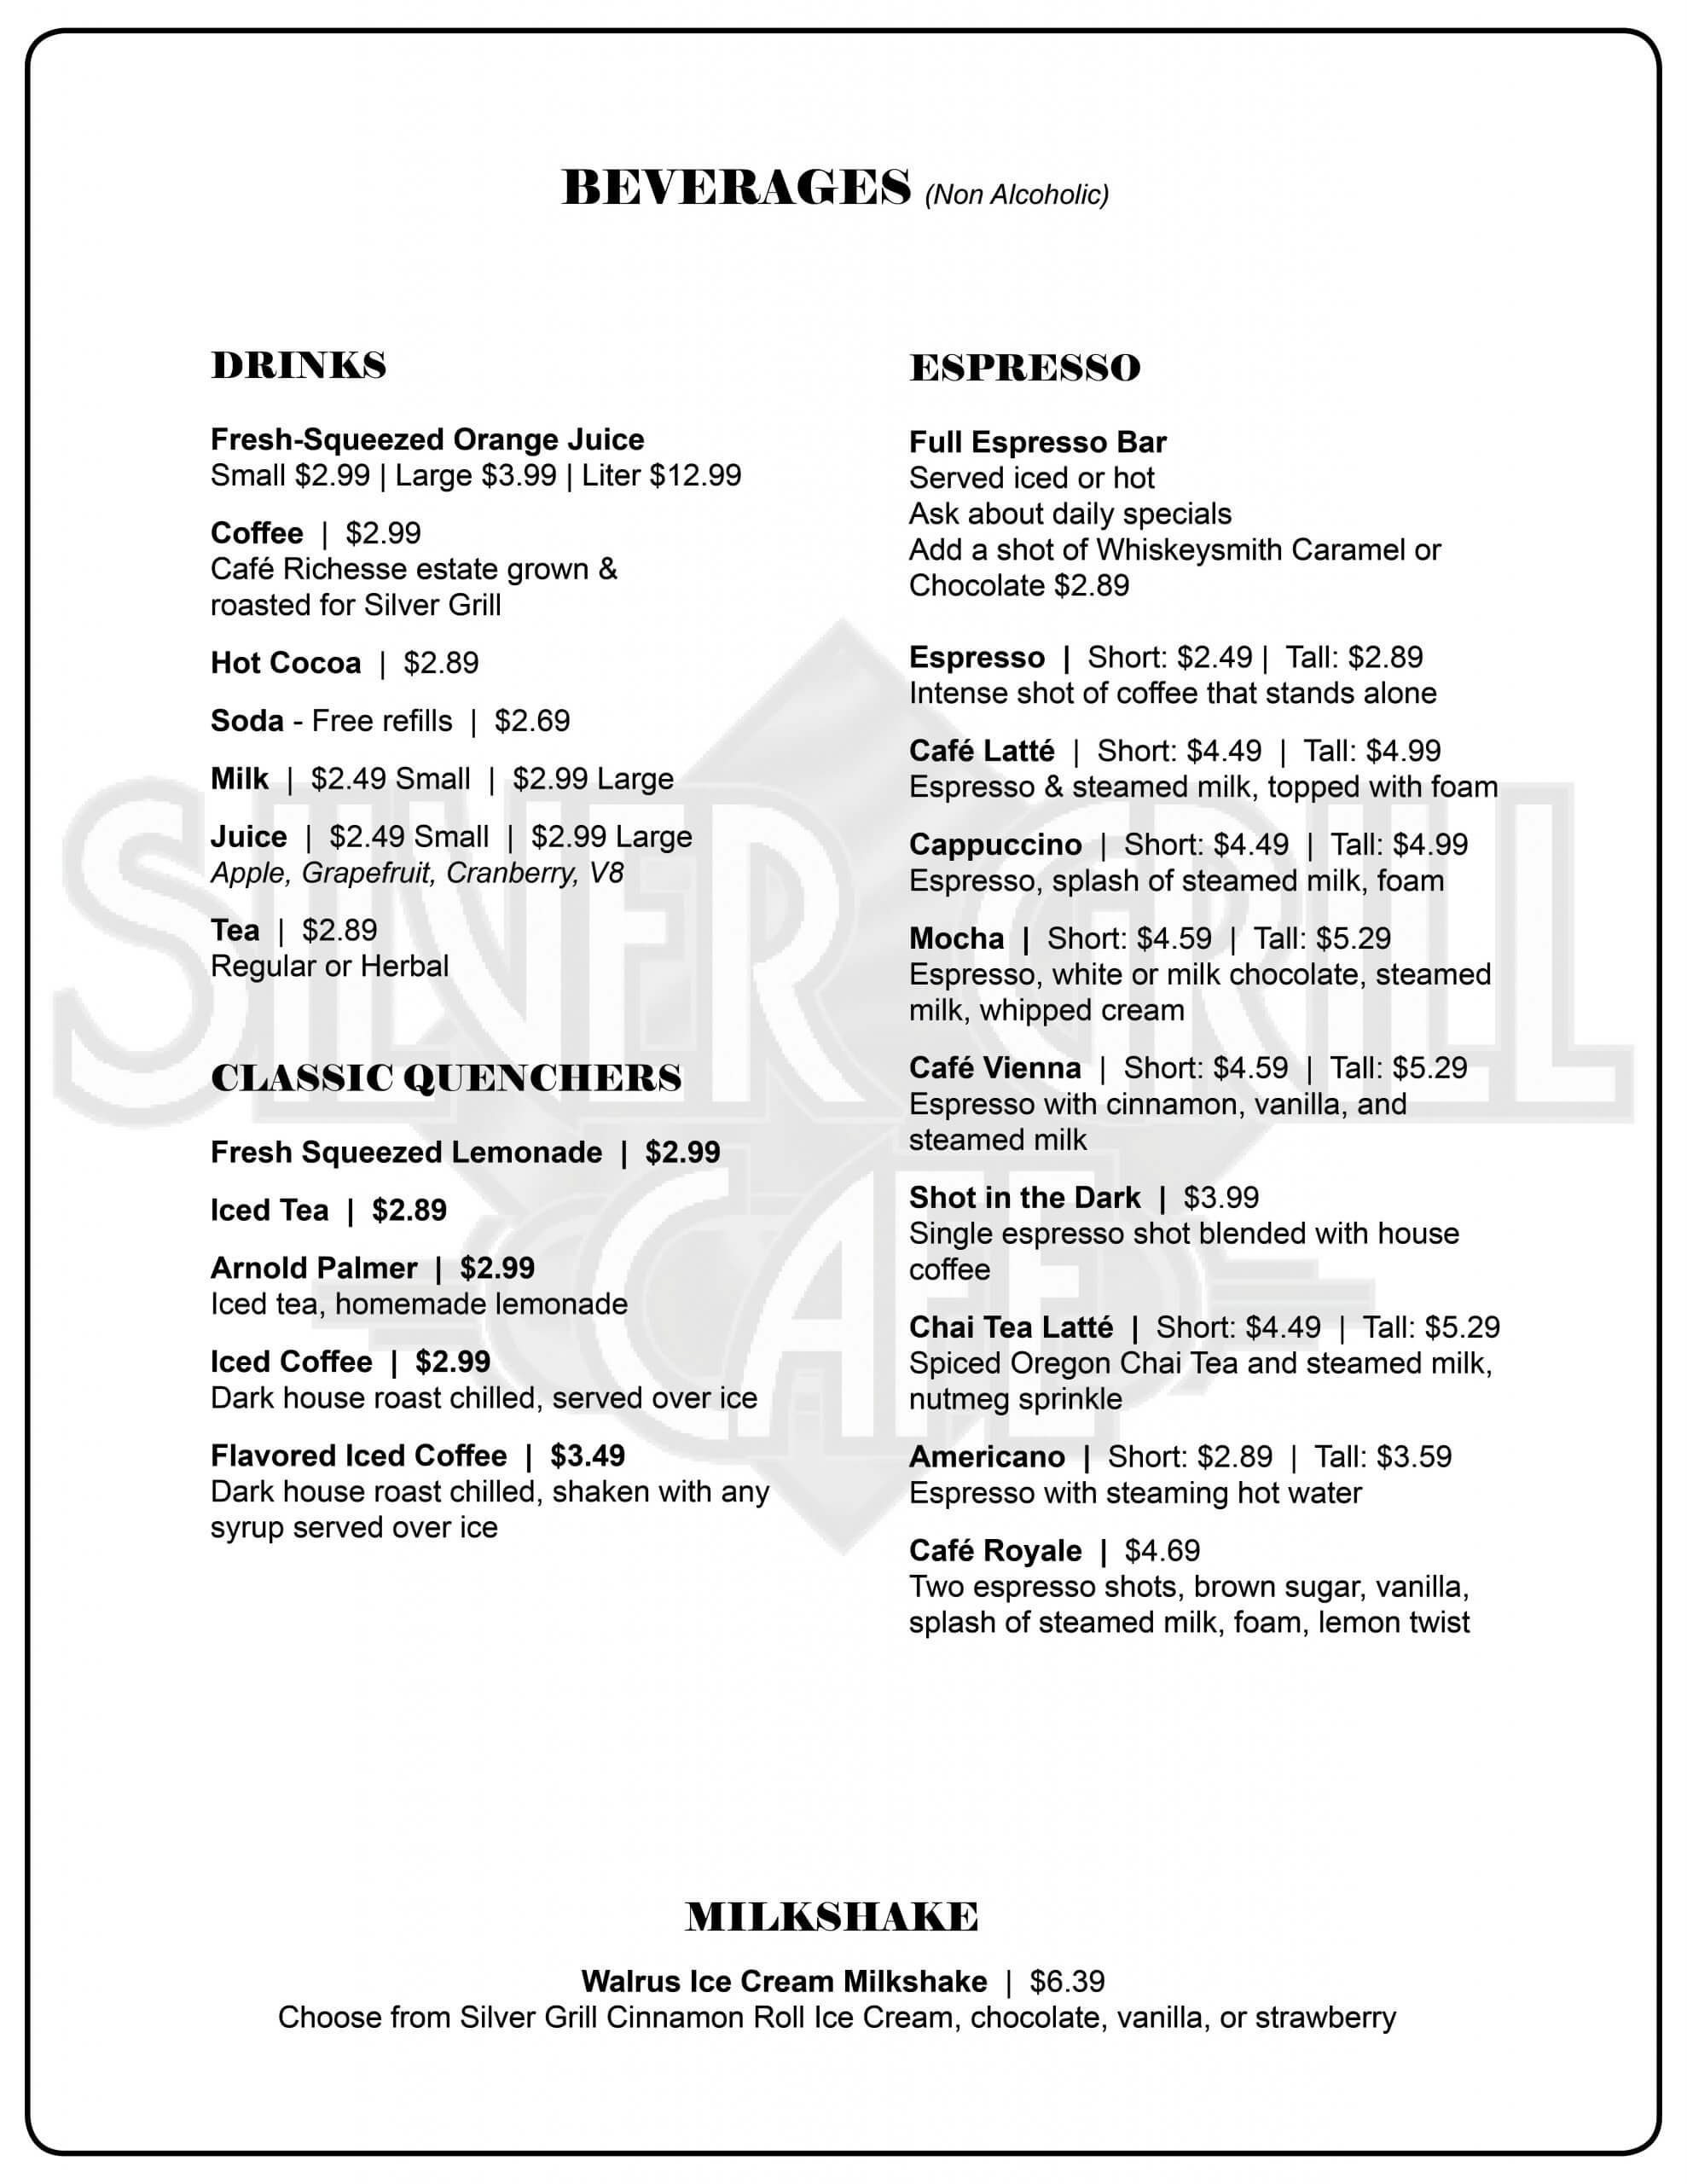 Silver Grill 8.5x11 2 sided October Drink Updates PAGE 1